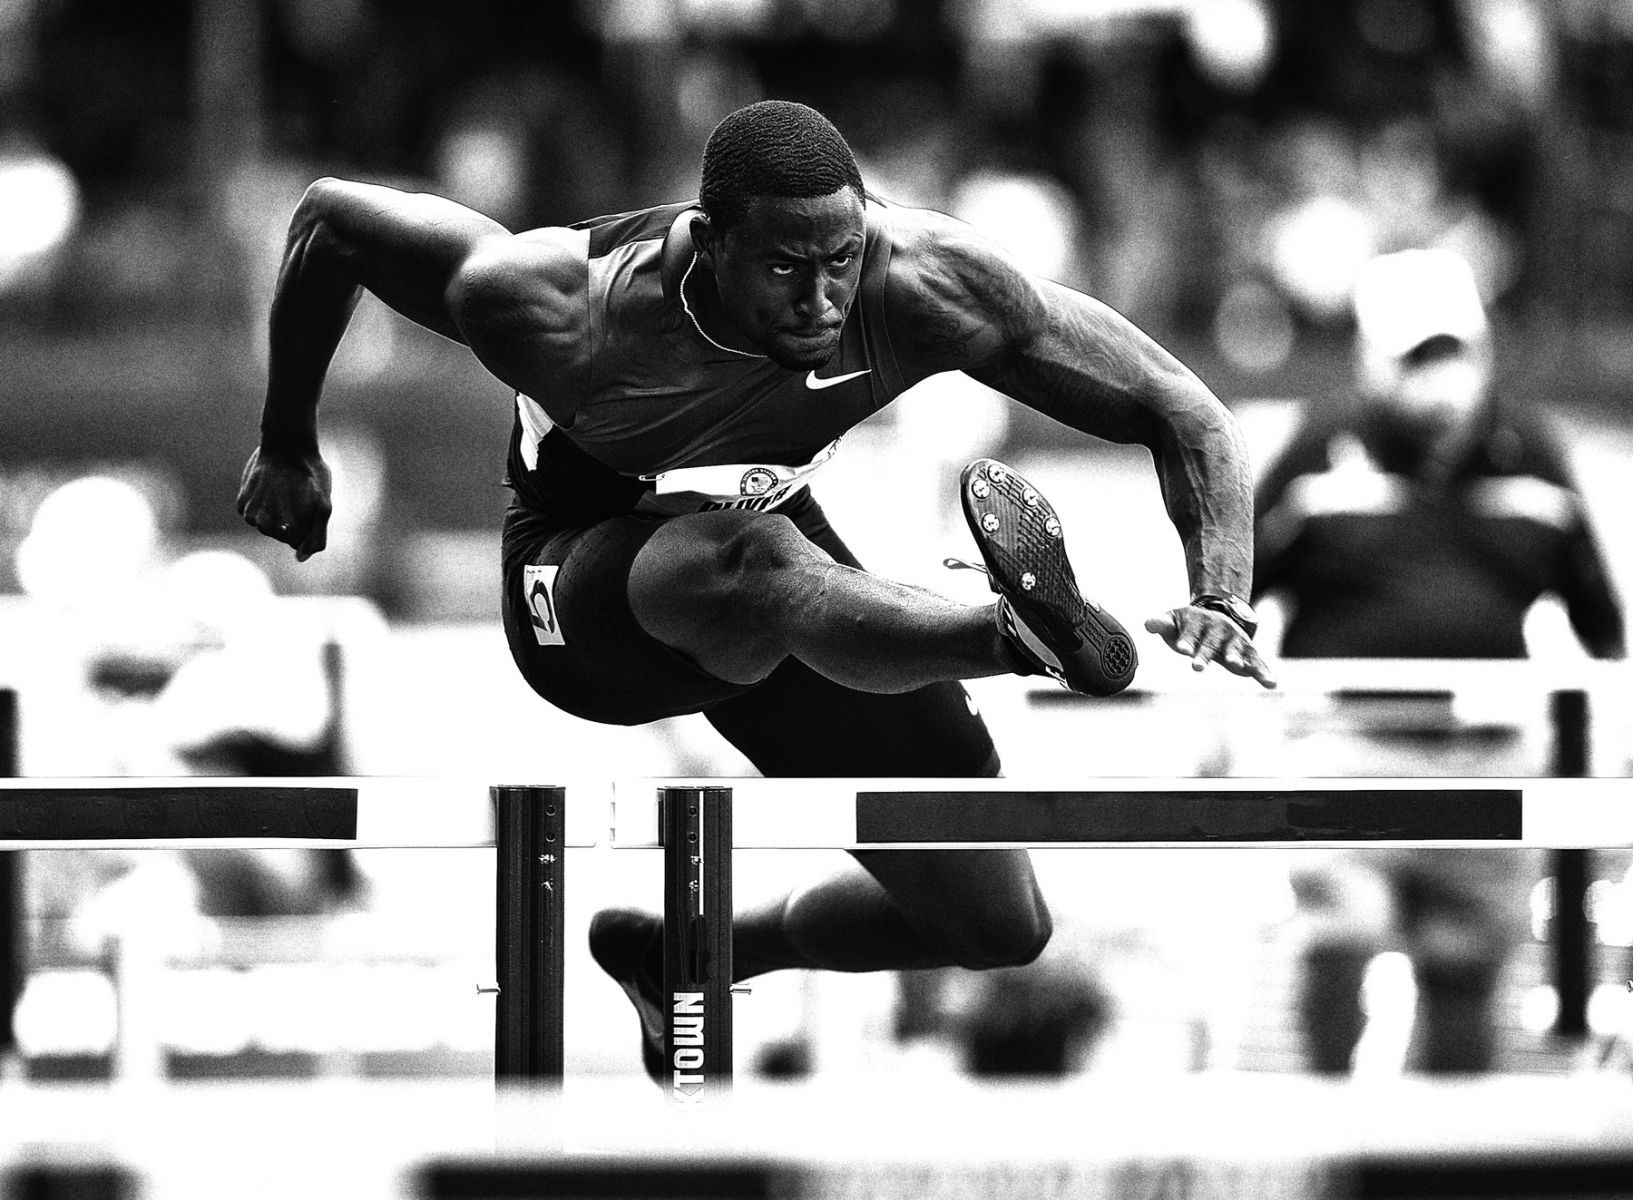 1ustrials2012_david_oliver_110h_track_and_field_image_jeff_cohen_photographer_lb.jpg